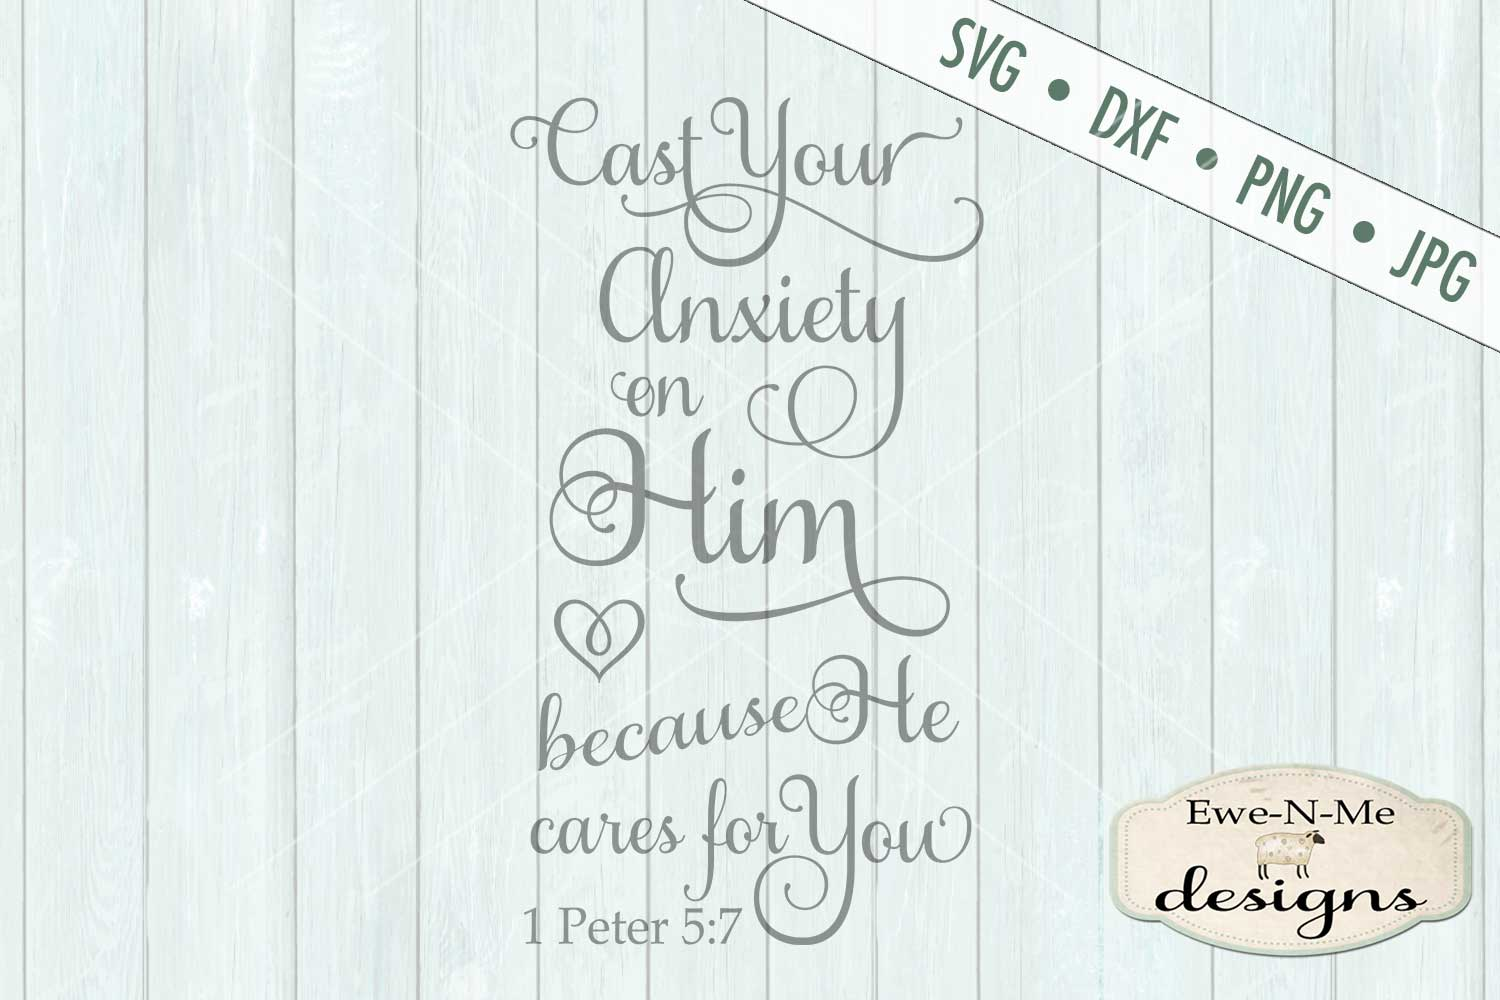 Cast Your Anxiety on Him 1 Peter 5 7 SVG DXF Cut File example image 2